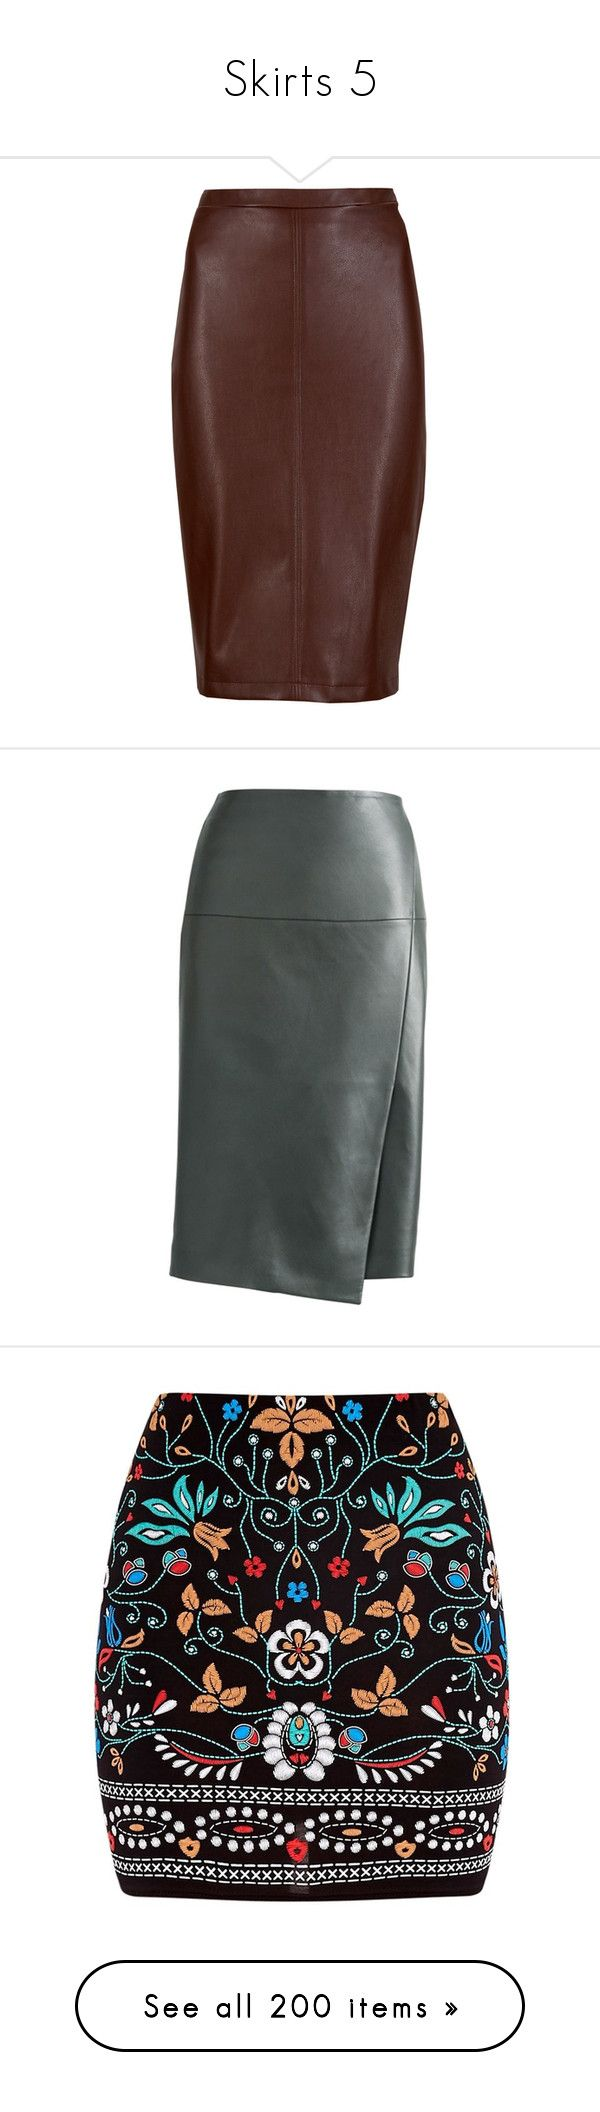 """Skirts 5"" by smilie-anne ❤ liked on Polyvore featuring skirts, bottoms, jupes, pencil skirts, saias, brown, lined skirt, petite brown skirt, zip back pencil skirt and brown pencil skirt"